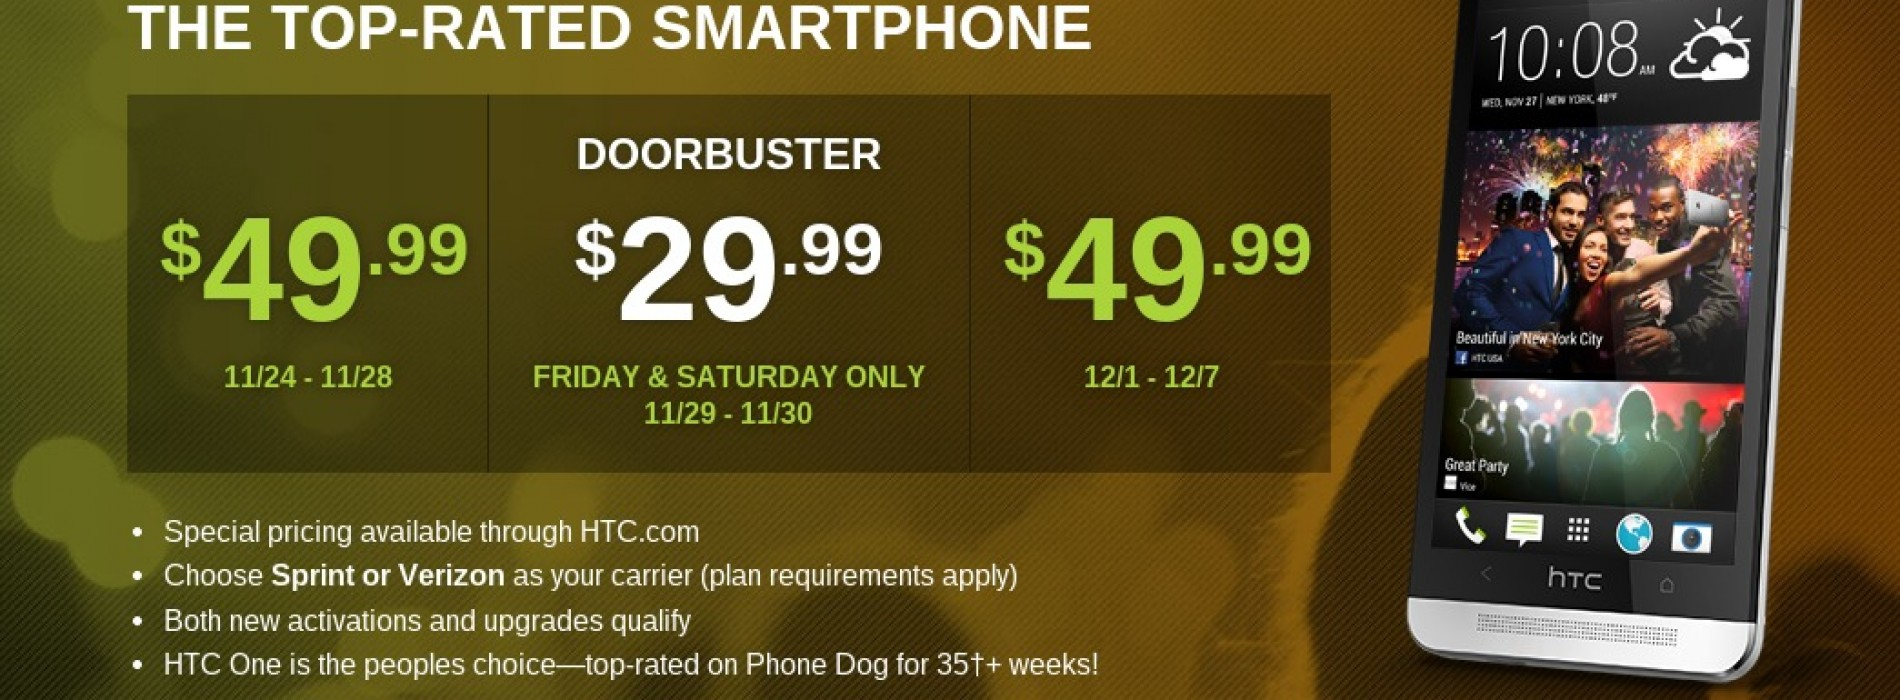 HTC discounting HTC One for Black Friday and beyond